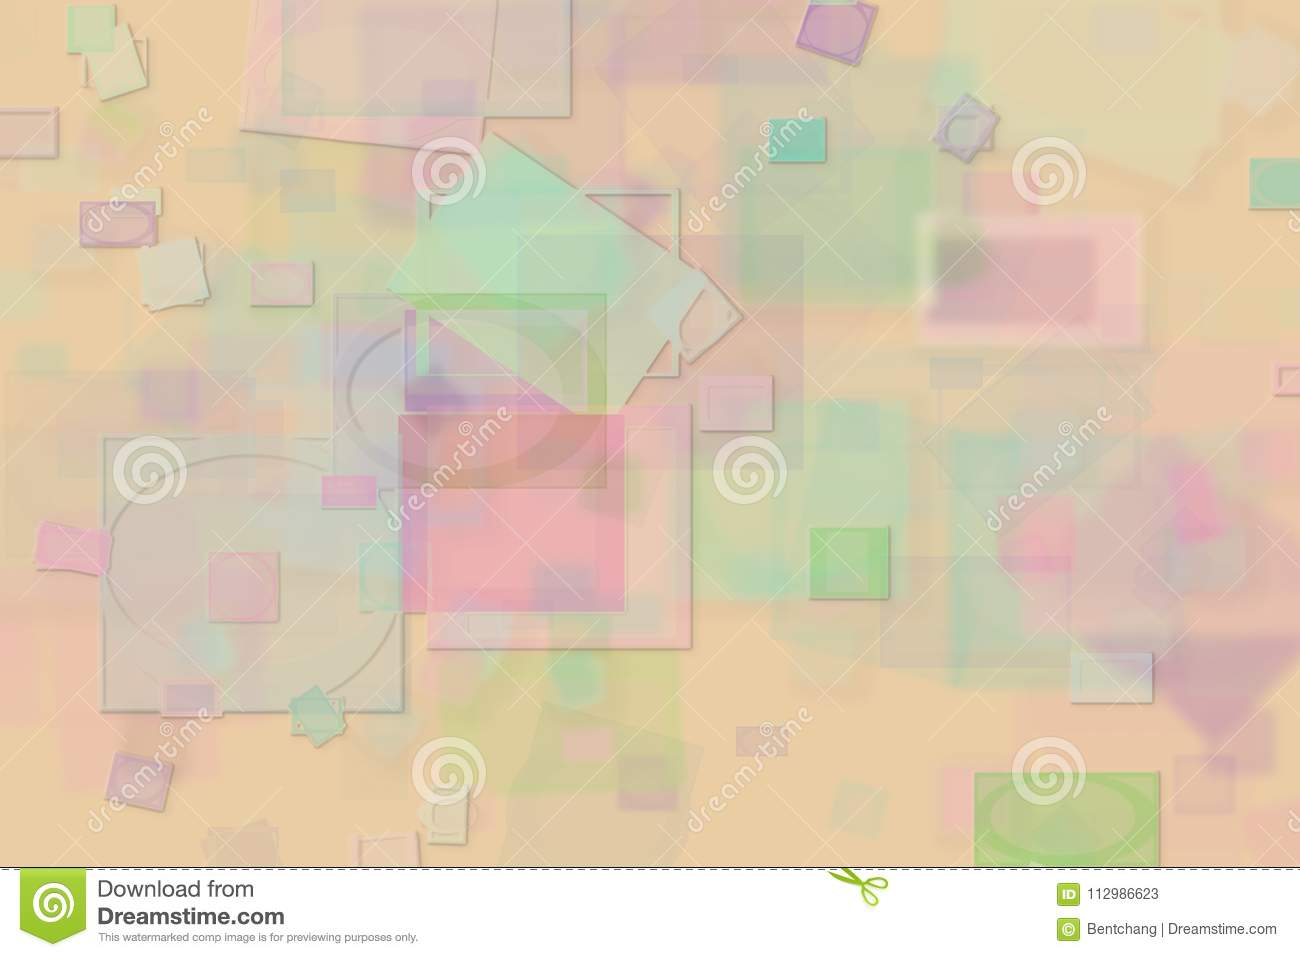 Abstract shape illustrations background. Pattern, generative, floor, creative & rectangle.